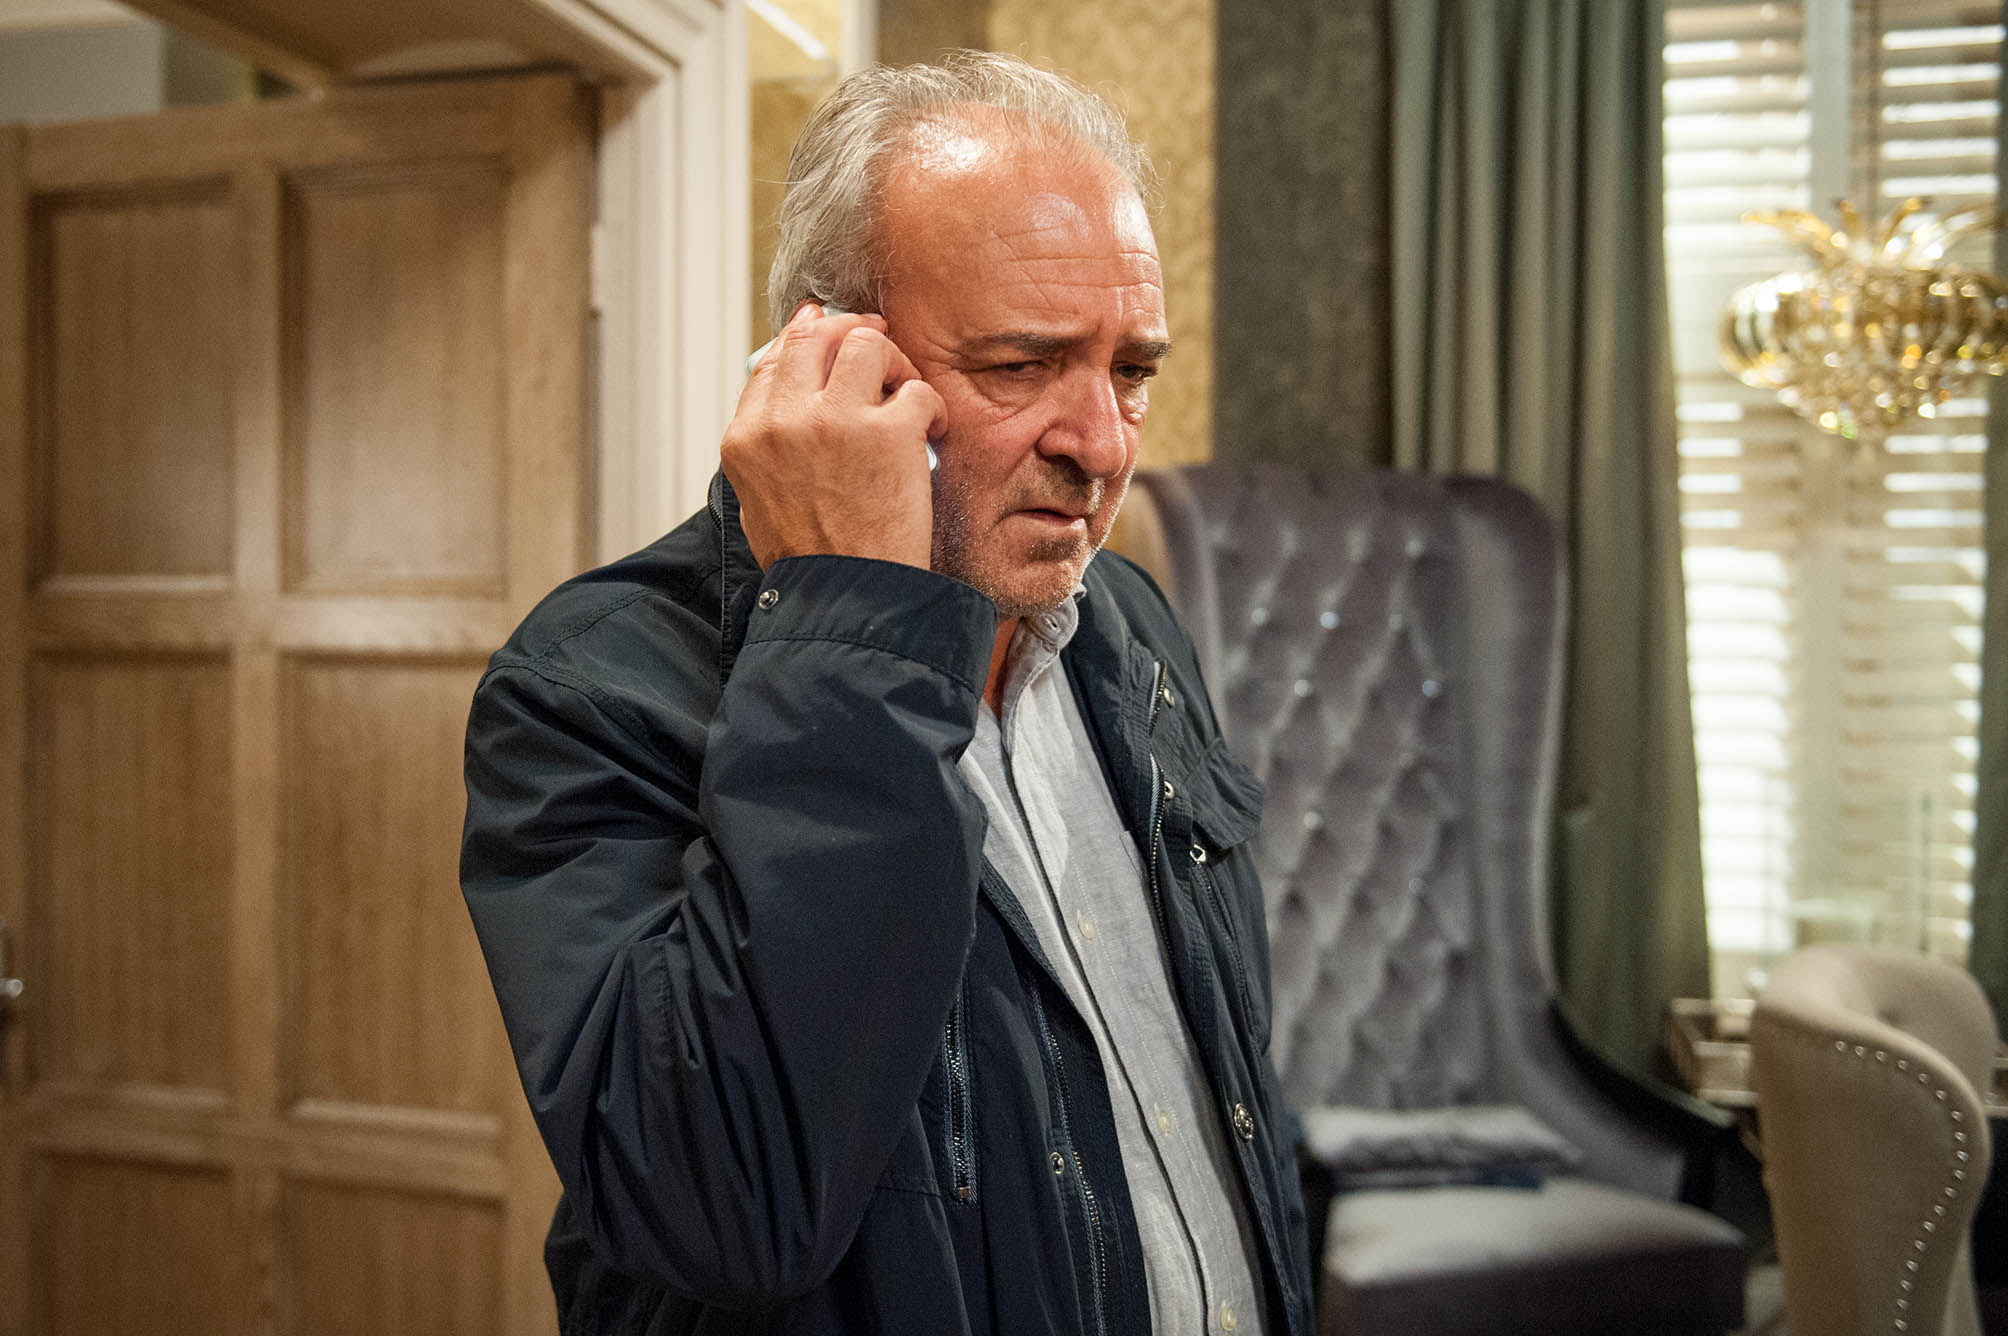 FROM ITV STRICT EMBARGO - No Use Before Tuesday 12 July 2016 Emmerdale - 7563 Thursday 21 July 2016 - 2nd Ep Lawrence White [JOHN BOWE] is determined to play dirty and calls his lawyer about starting divorce proceedings against Bernice. Picture contact: david.crook@itv.com on 0161 952 6214 Photographer - Andrew Boyce This photograph is (C) ITV Plc and can only be reproduced for editorial purposes directly in connection with the programme or event mentioned above, or ITV plc. Once made available by ITV plc Picture Desk, this photograph can be reproduced once only up until the transmission [TX] date and no reproduction fee will be charged. Any subsequent usage may incur a fee. This photograph must not be manipulated [excluding basic cropping] in a manner which alters the visual appearance of the person photographed deemed detrimental or inappropriate by ITV plc Picture Desk. This photograph must not be syndicated to any other company, publication or website, or permanently archived, without the express written permission of ITV Plc Picture Desk. Full Terms and conditions are available on the website www.itvpictures.com